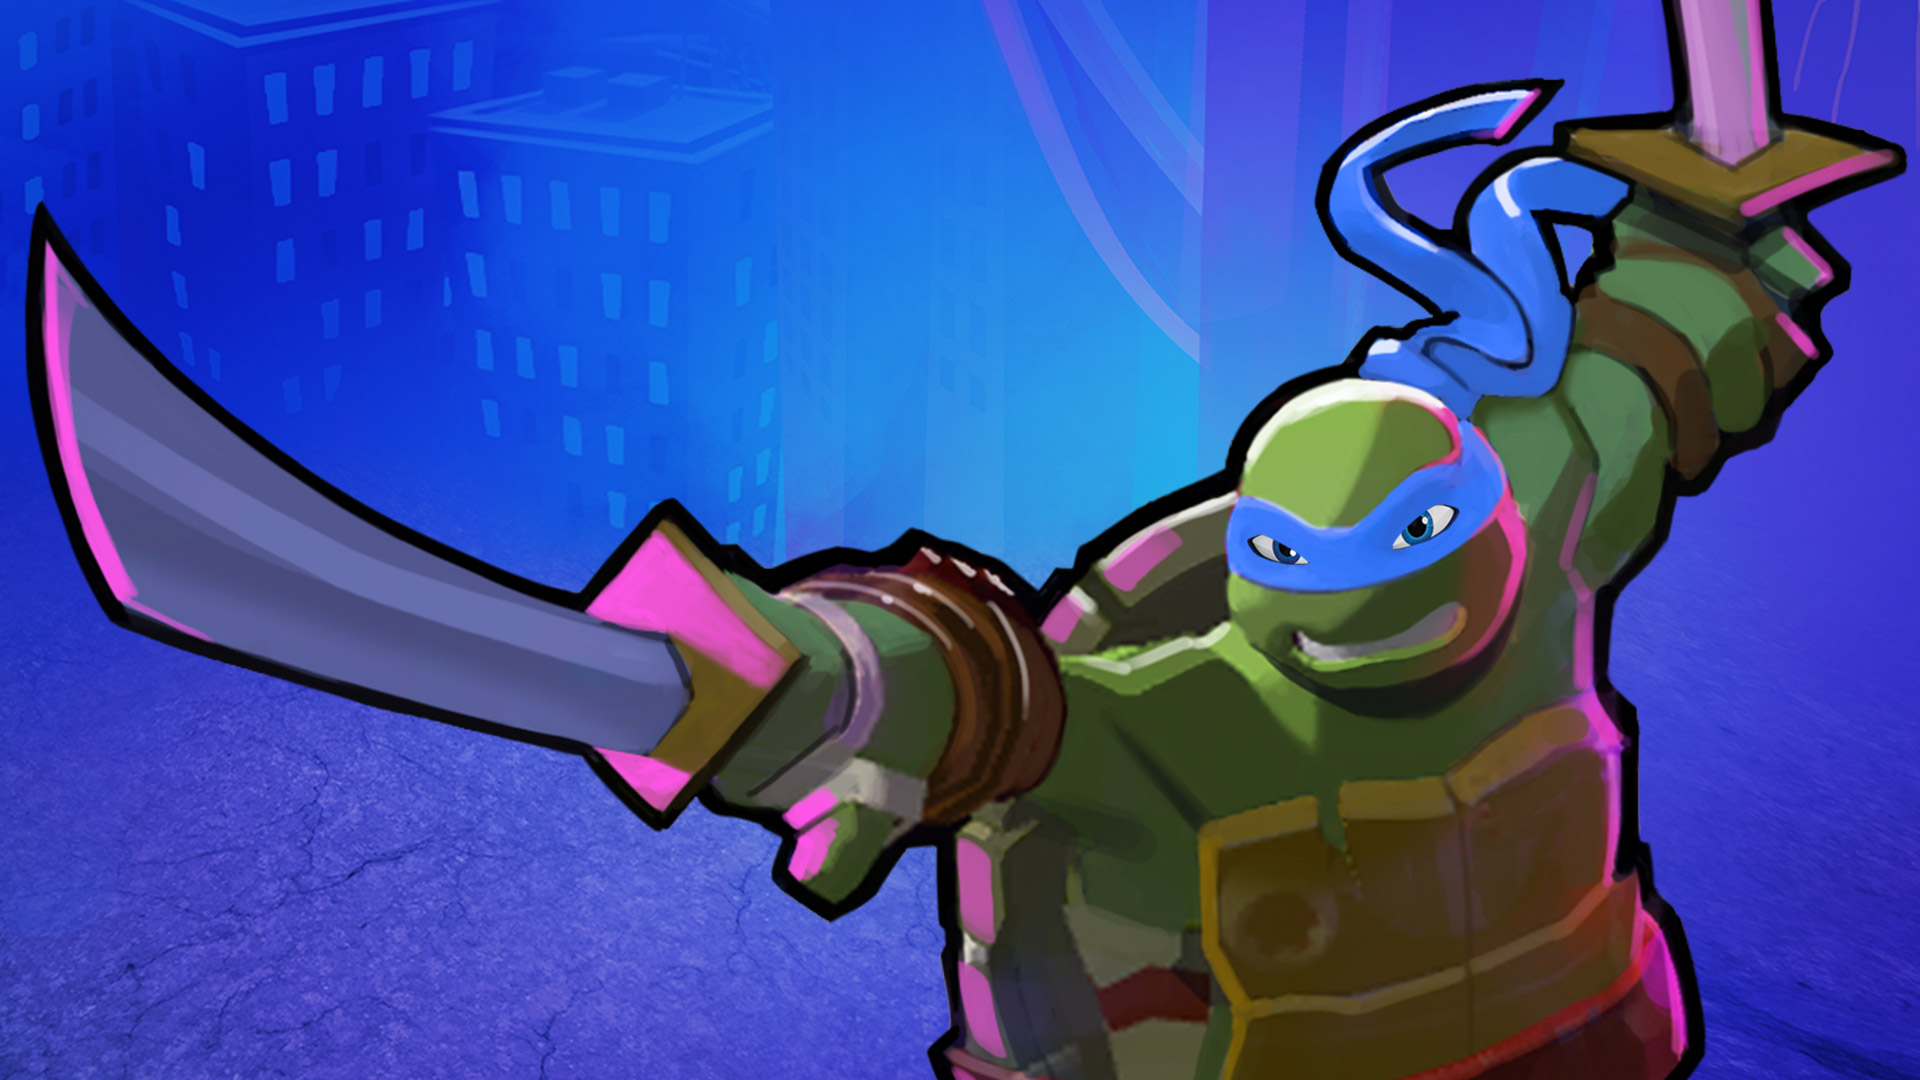 Steam Card Exchange    Showcase    Teenage Mutant Ninja Turtles ... dce0498fd